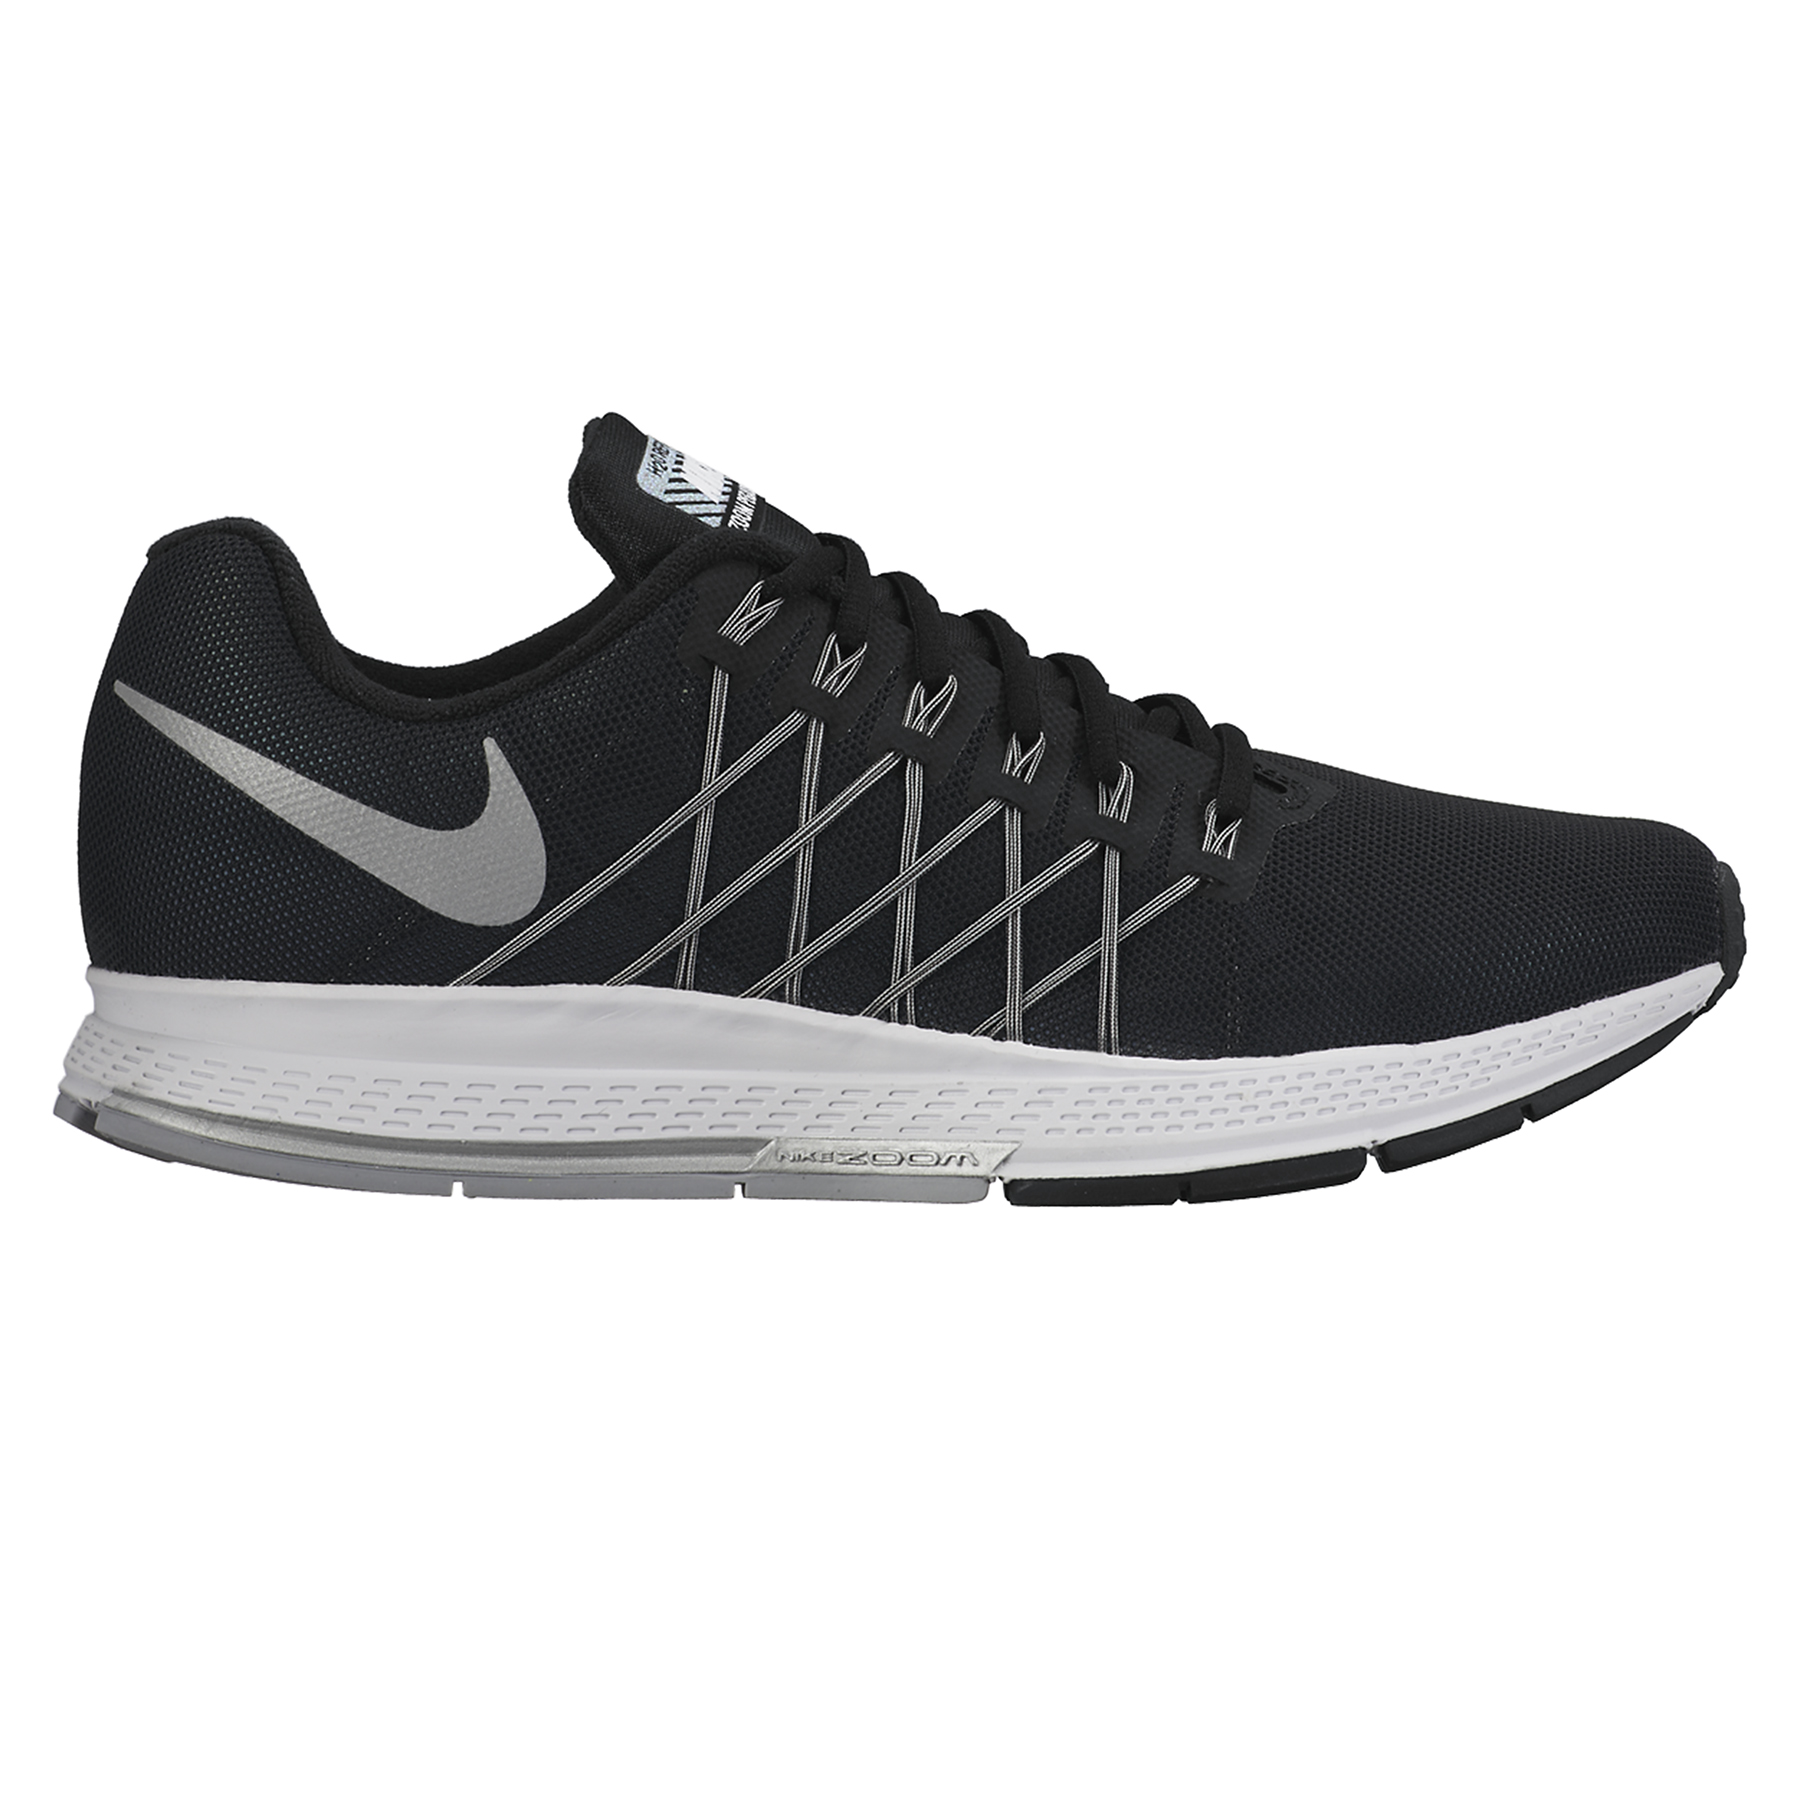 Nike Air Zoom Pegasus 32 Flash Trainers Black